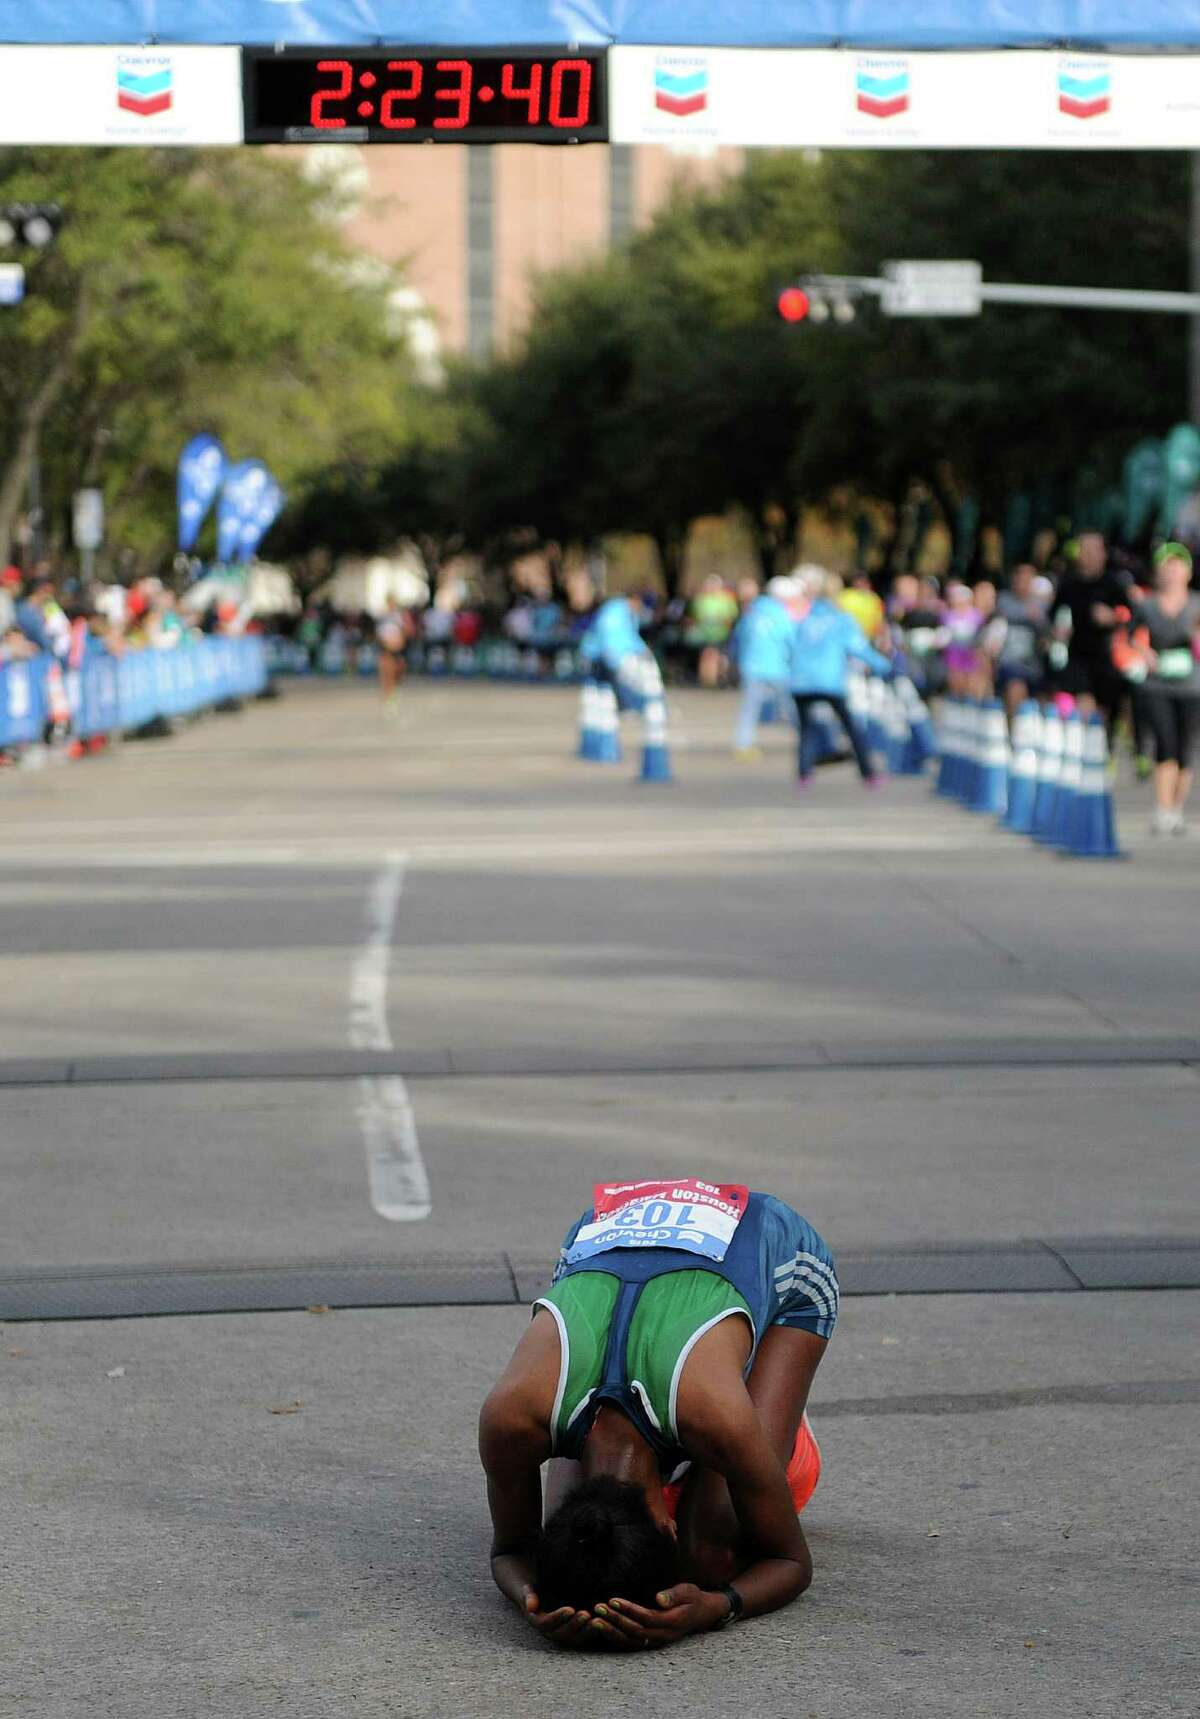 Guteni Imana of Ethipoia reacts after finishing in second place in the women's marathon during the Houston Marathon, Sunday, January 18, 2015 in Houston.